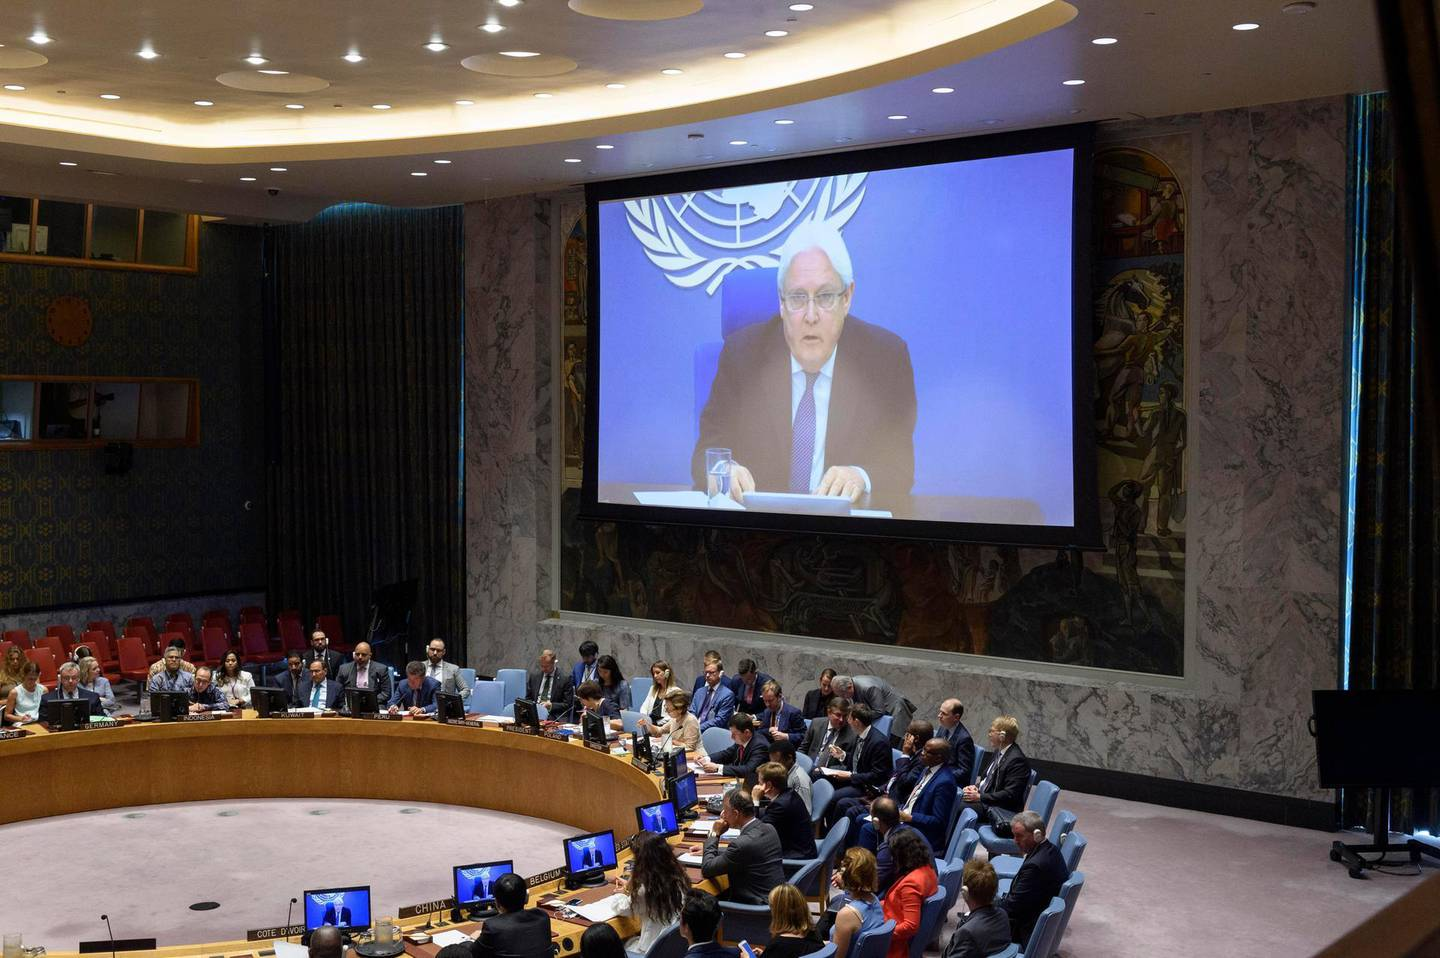 Martin Griffiths (on screens), Special Envoy of the Secretary-General for Yemen, briefs the Security Council meeting on the situation in the Middle East (Yemen). 20 August 2019, United Nations, New York. UN Photo/Loey Felipe